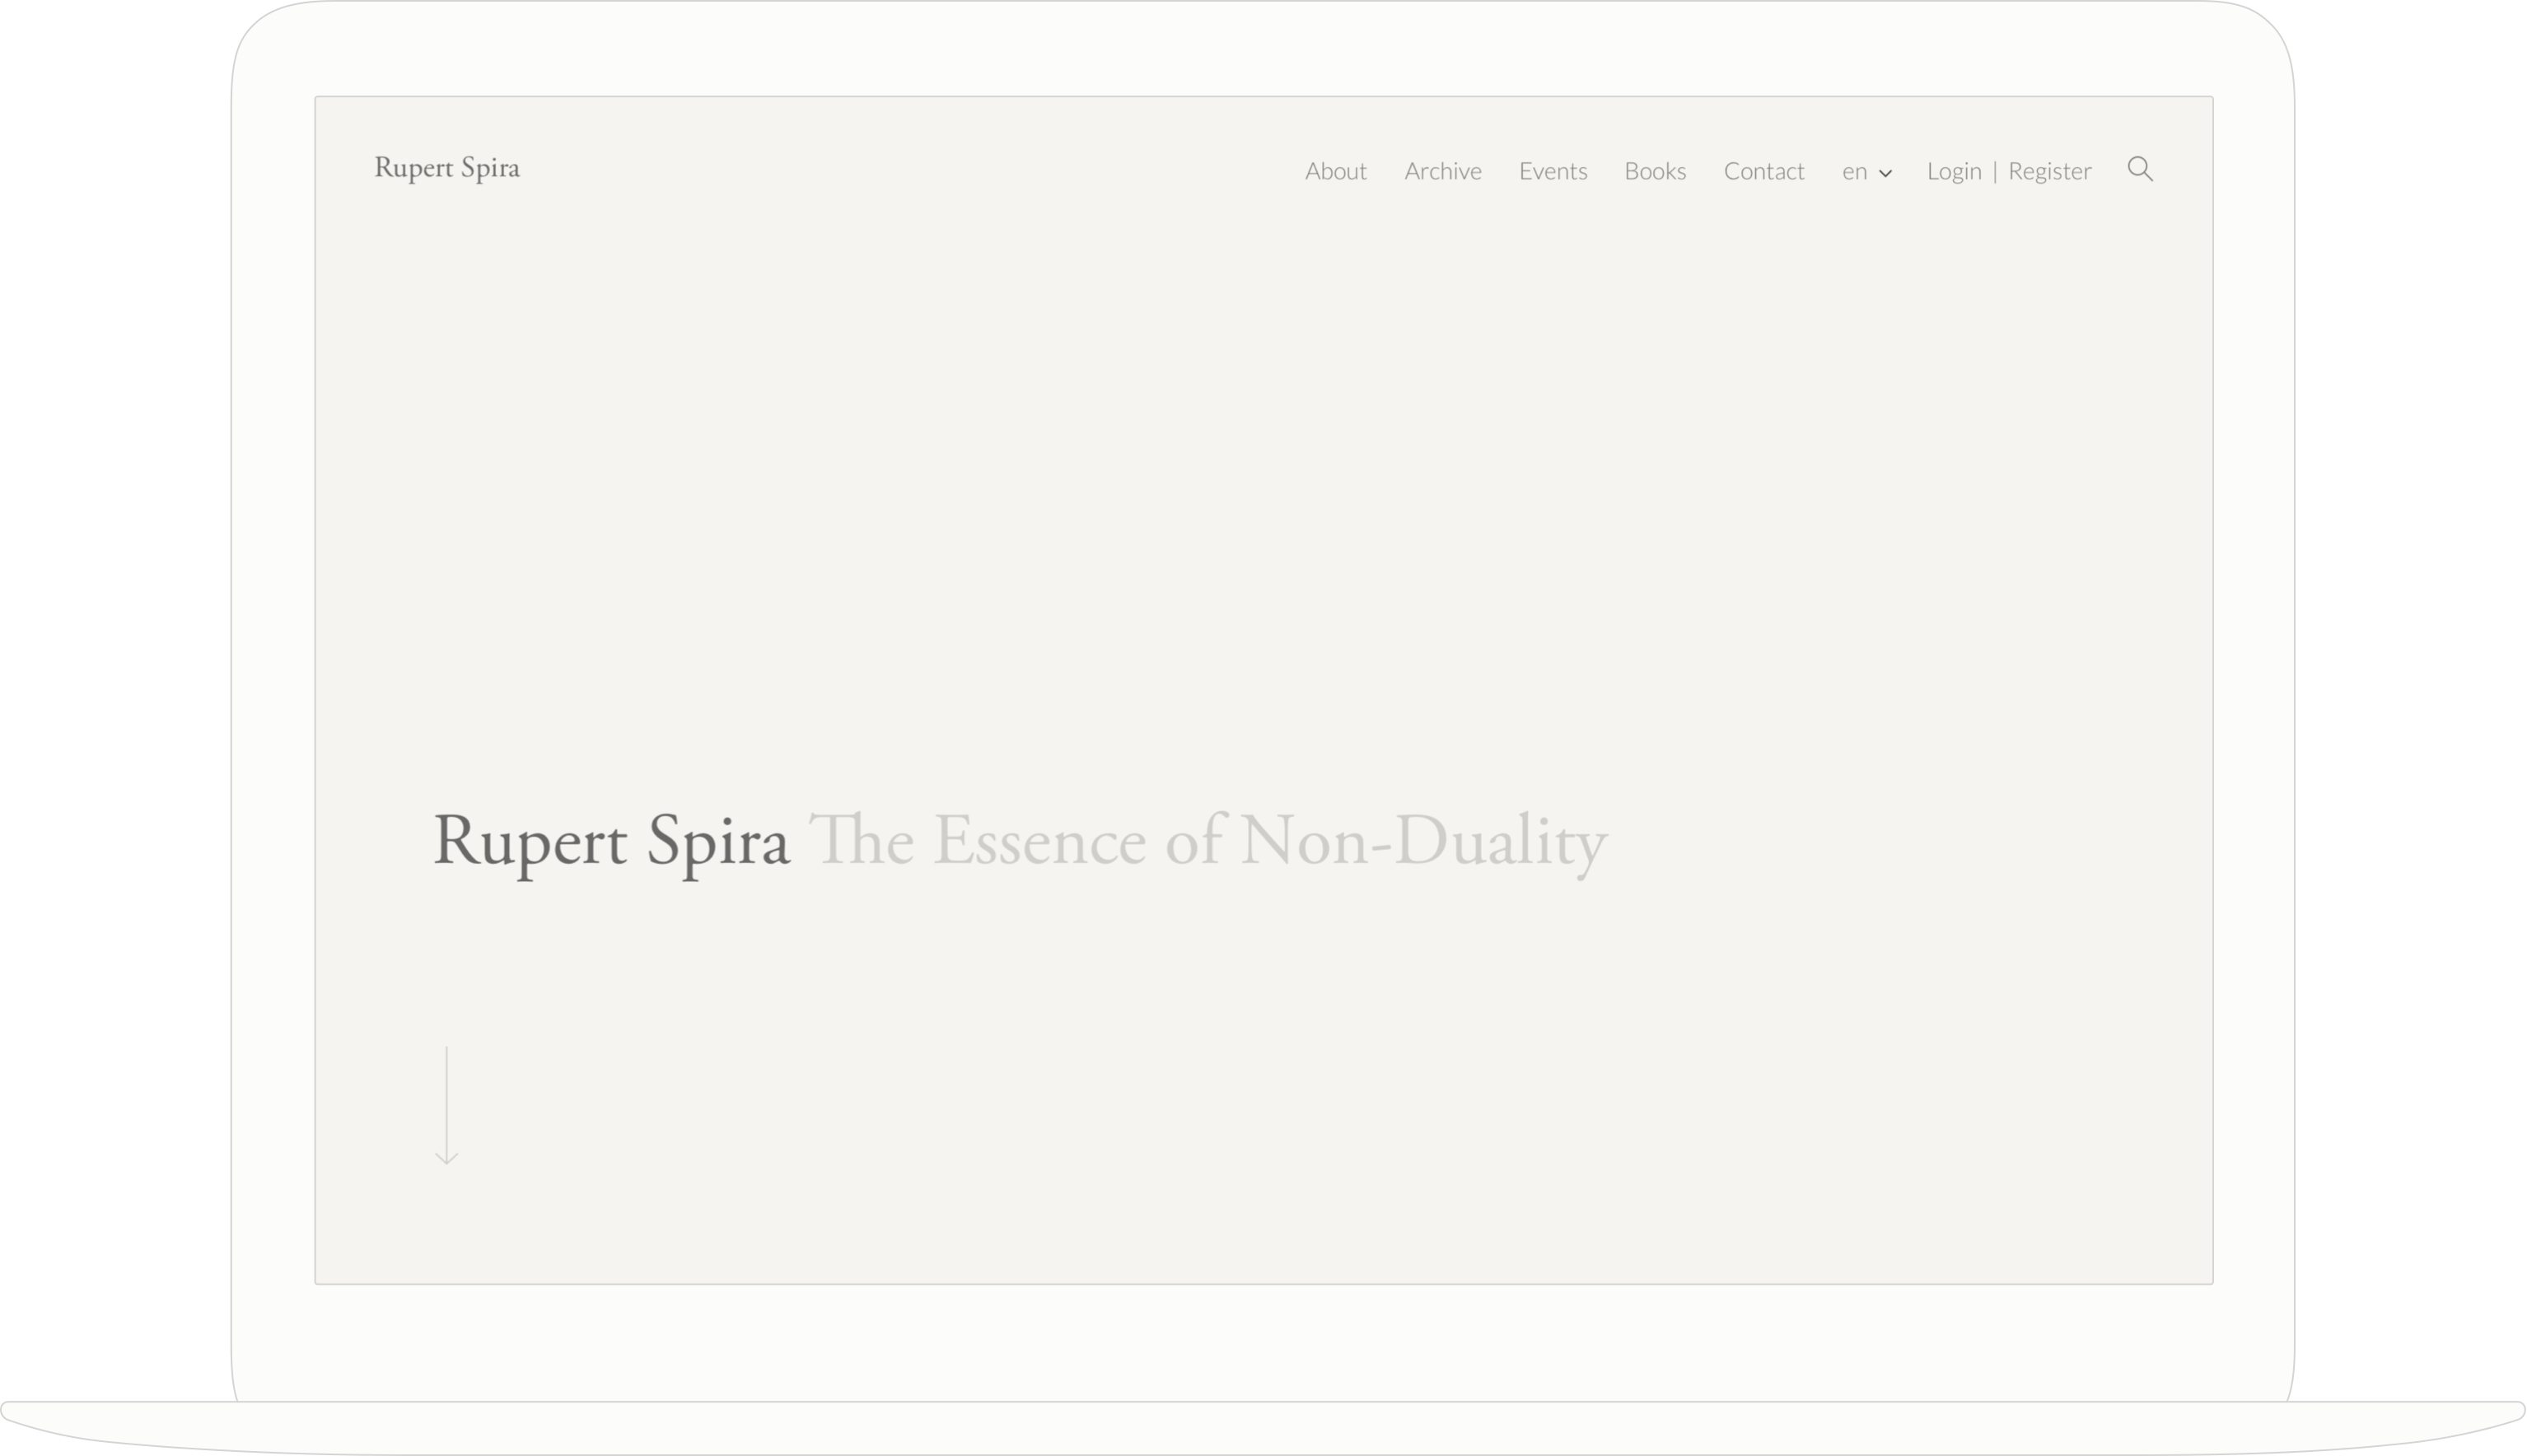 The website for Non-Duality teacher, Rupert Spira